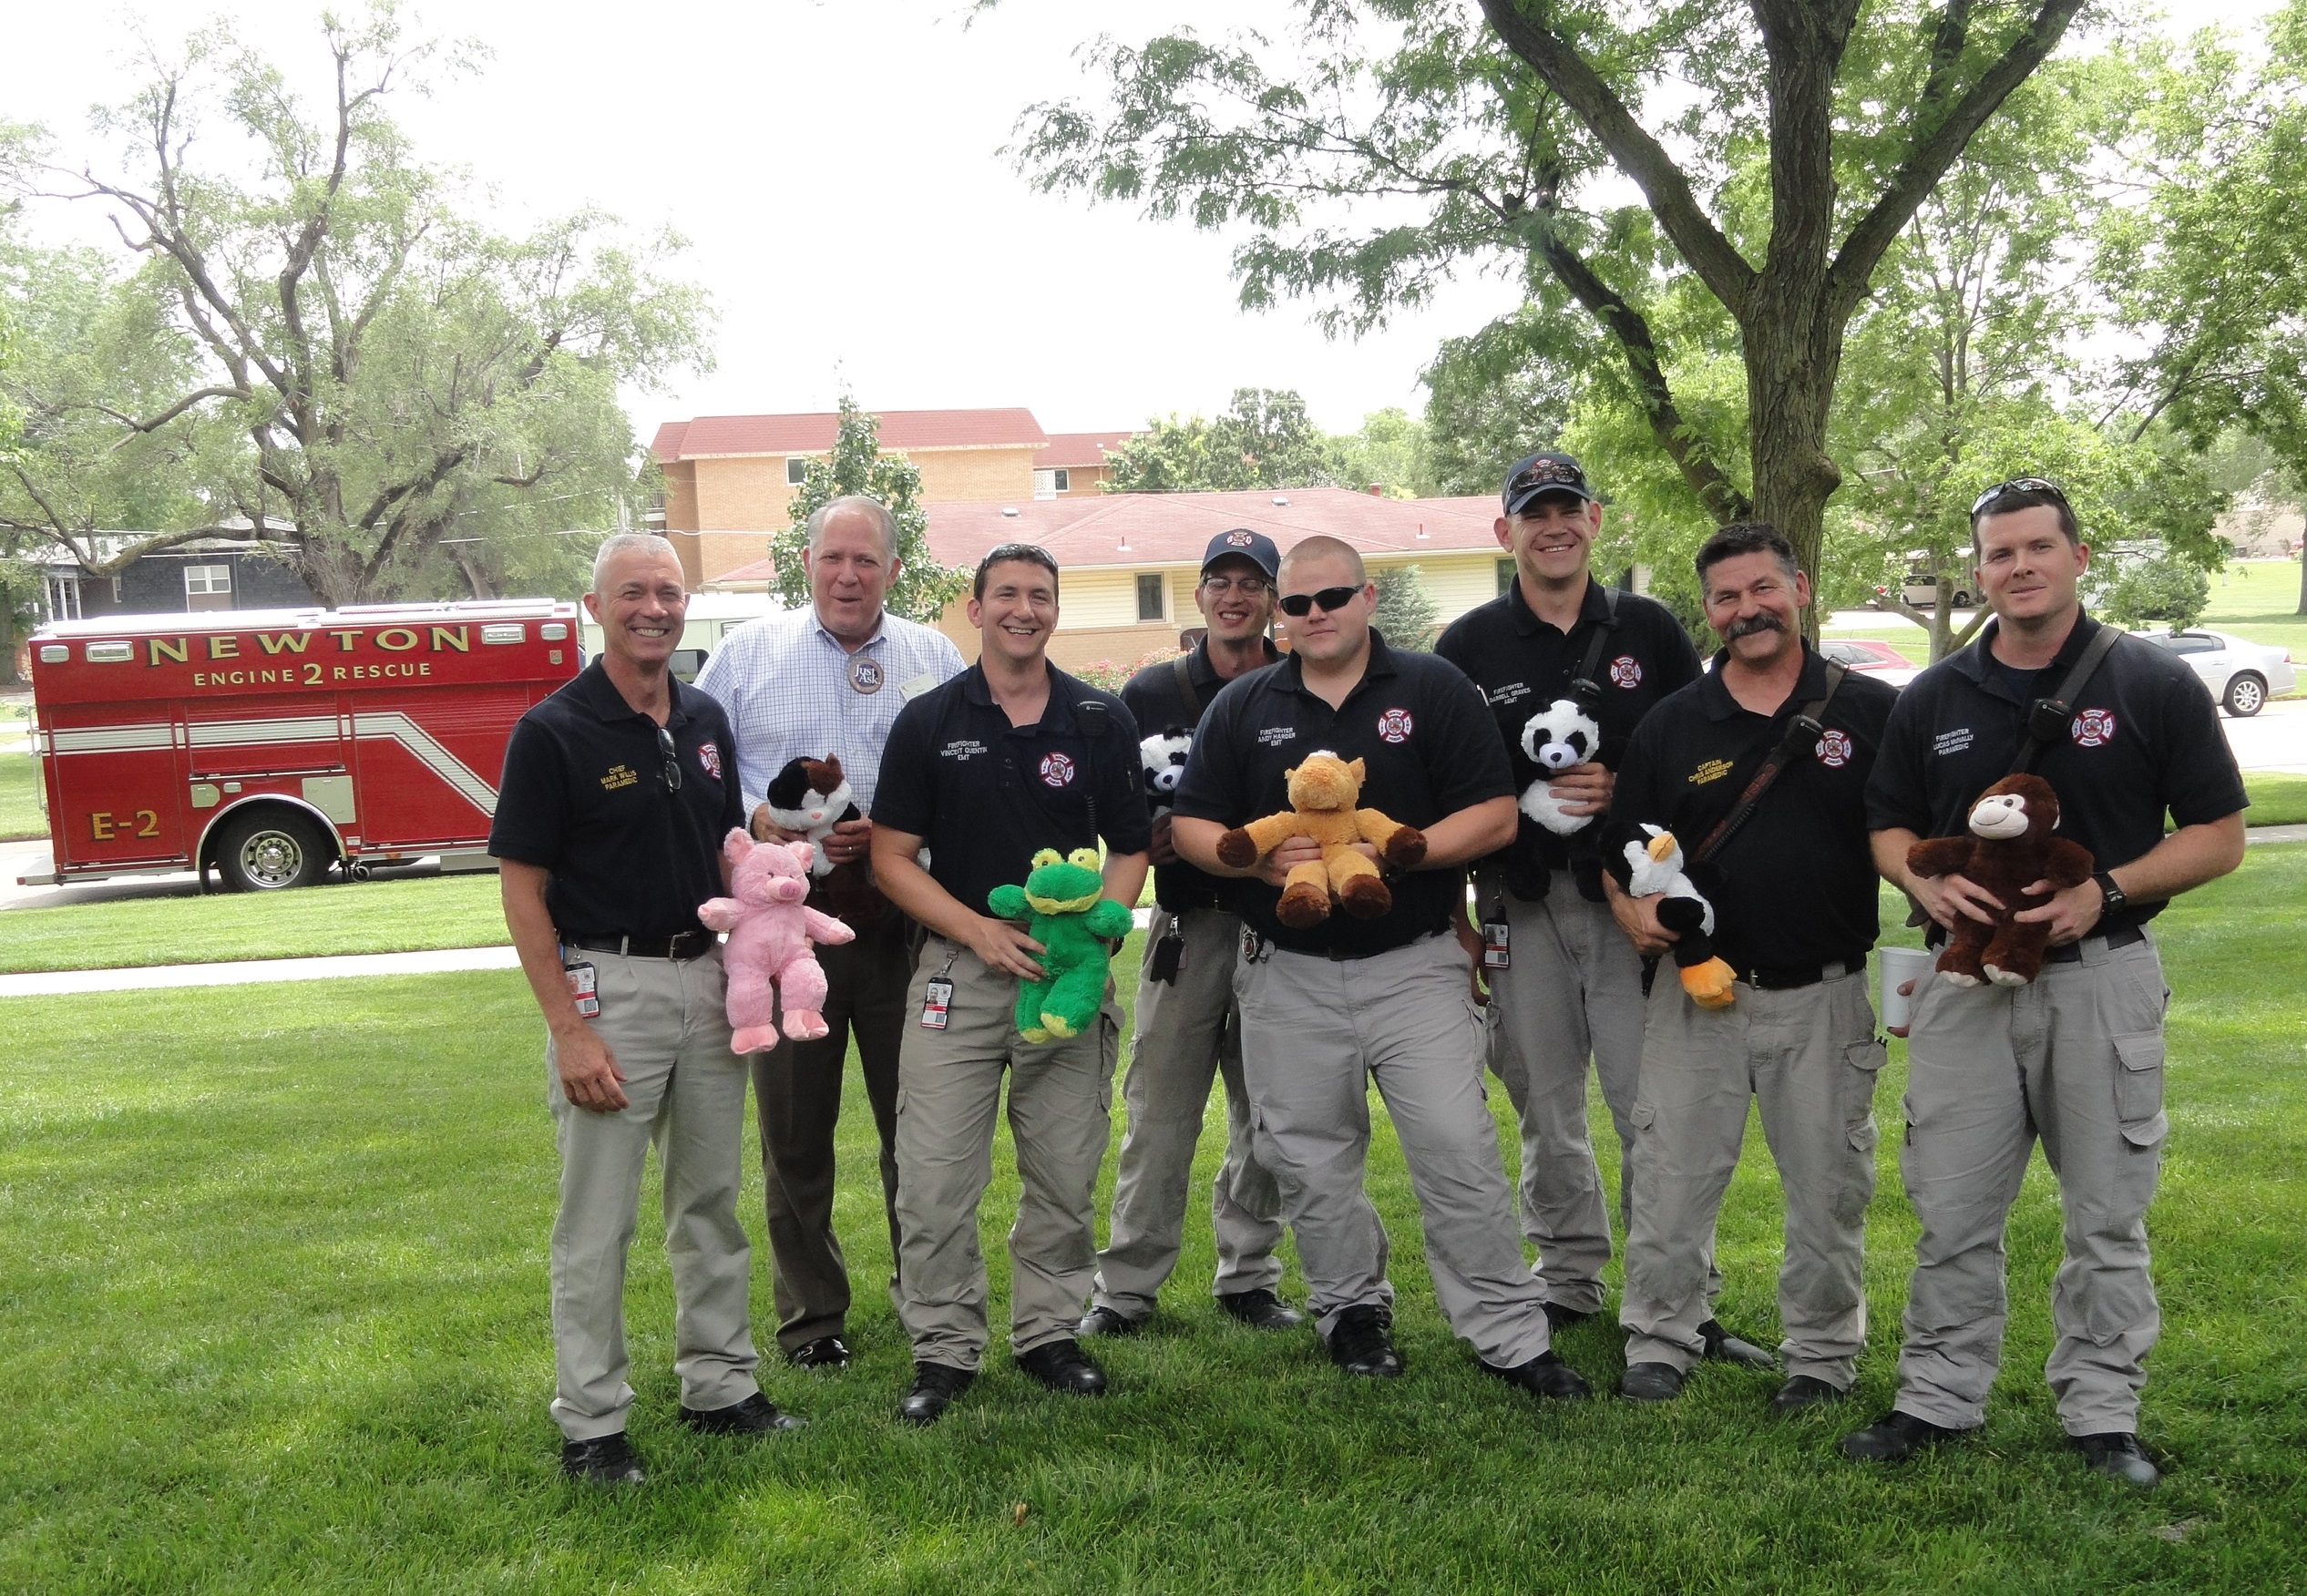 First responders hold stuffed animals made by residents of Presbyterian Manor. The animals were made to present to children when responding to crisis calls. Presbyterian Manor hosted first responders at a Flag Day ice cream social